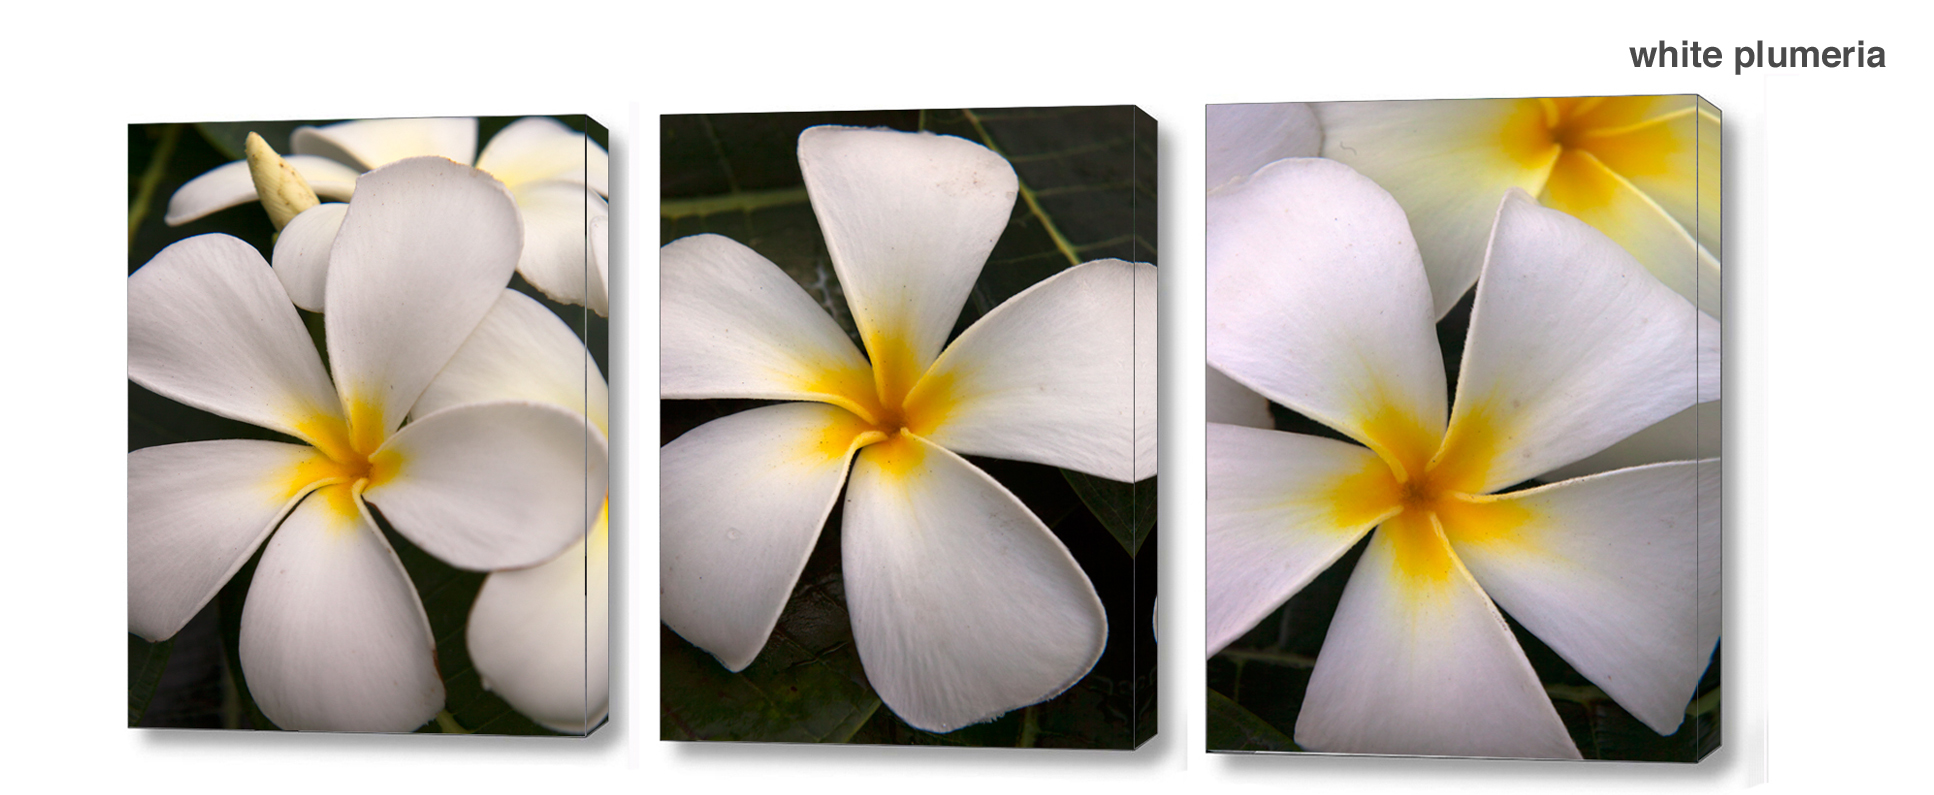 white plumeria series - Floral Series Wall Decor Macro Photography Matted & Giclée Canvas Prints